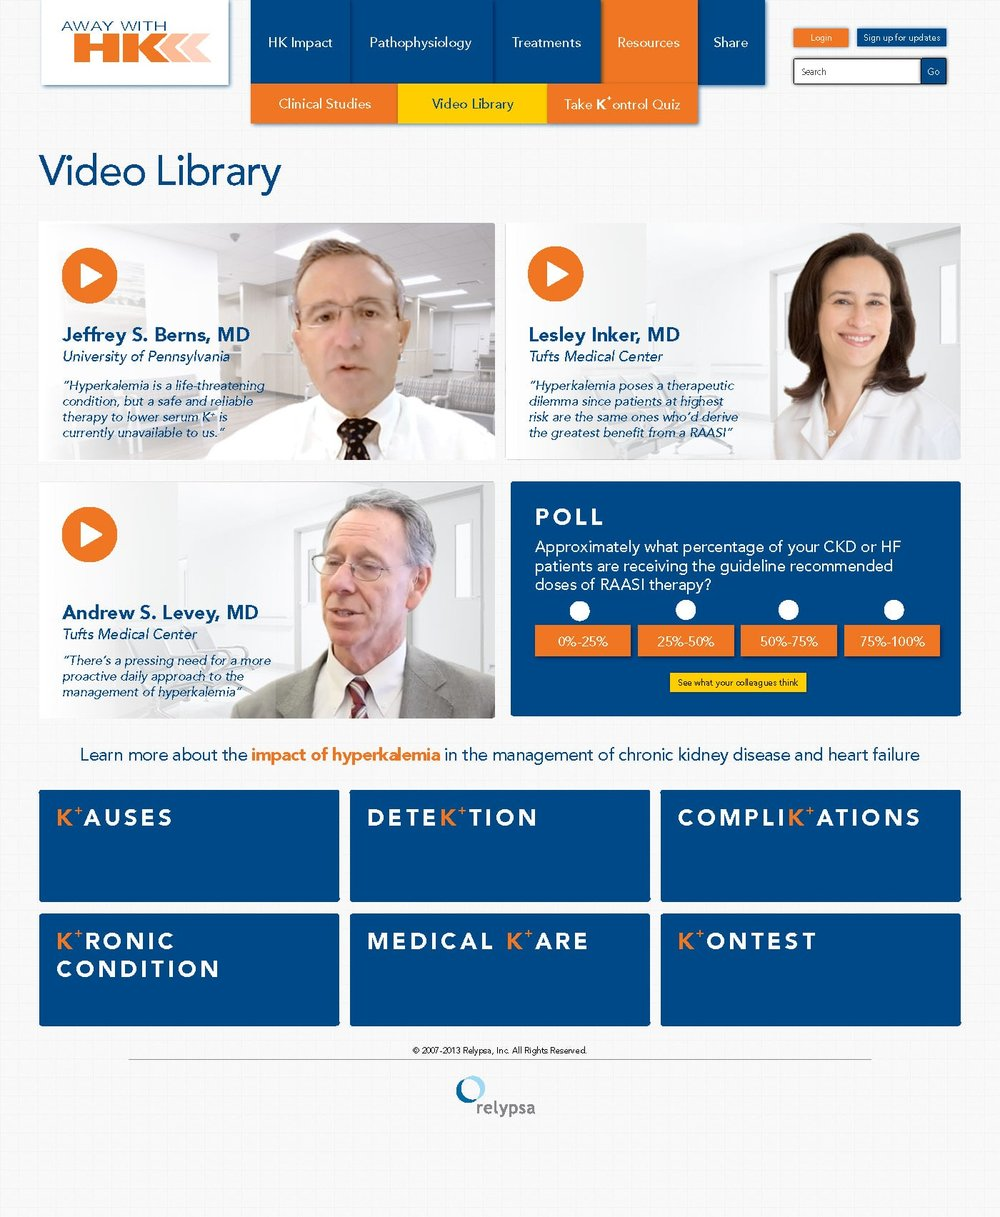 Our KOL videos are a major call to action with the subsequent video library page given extra attention.